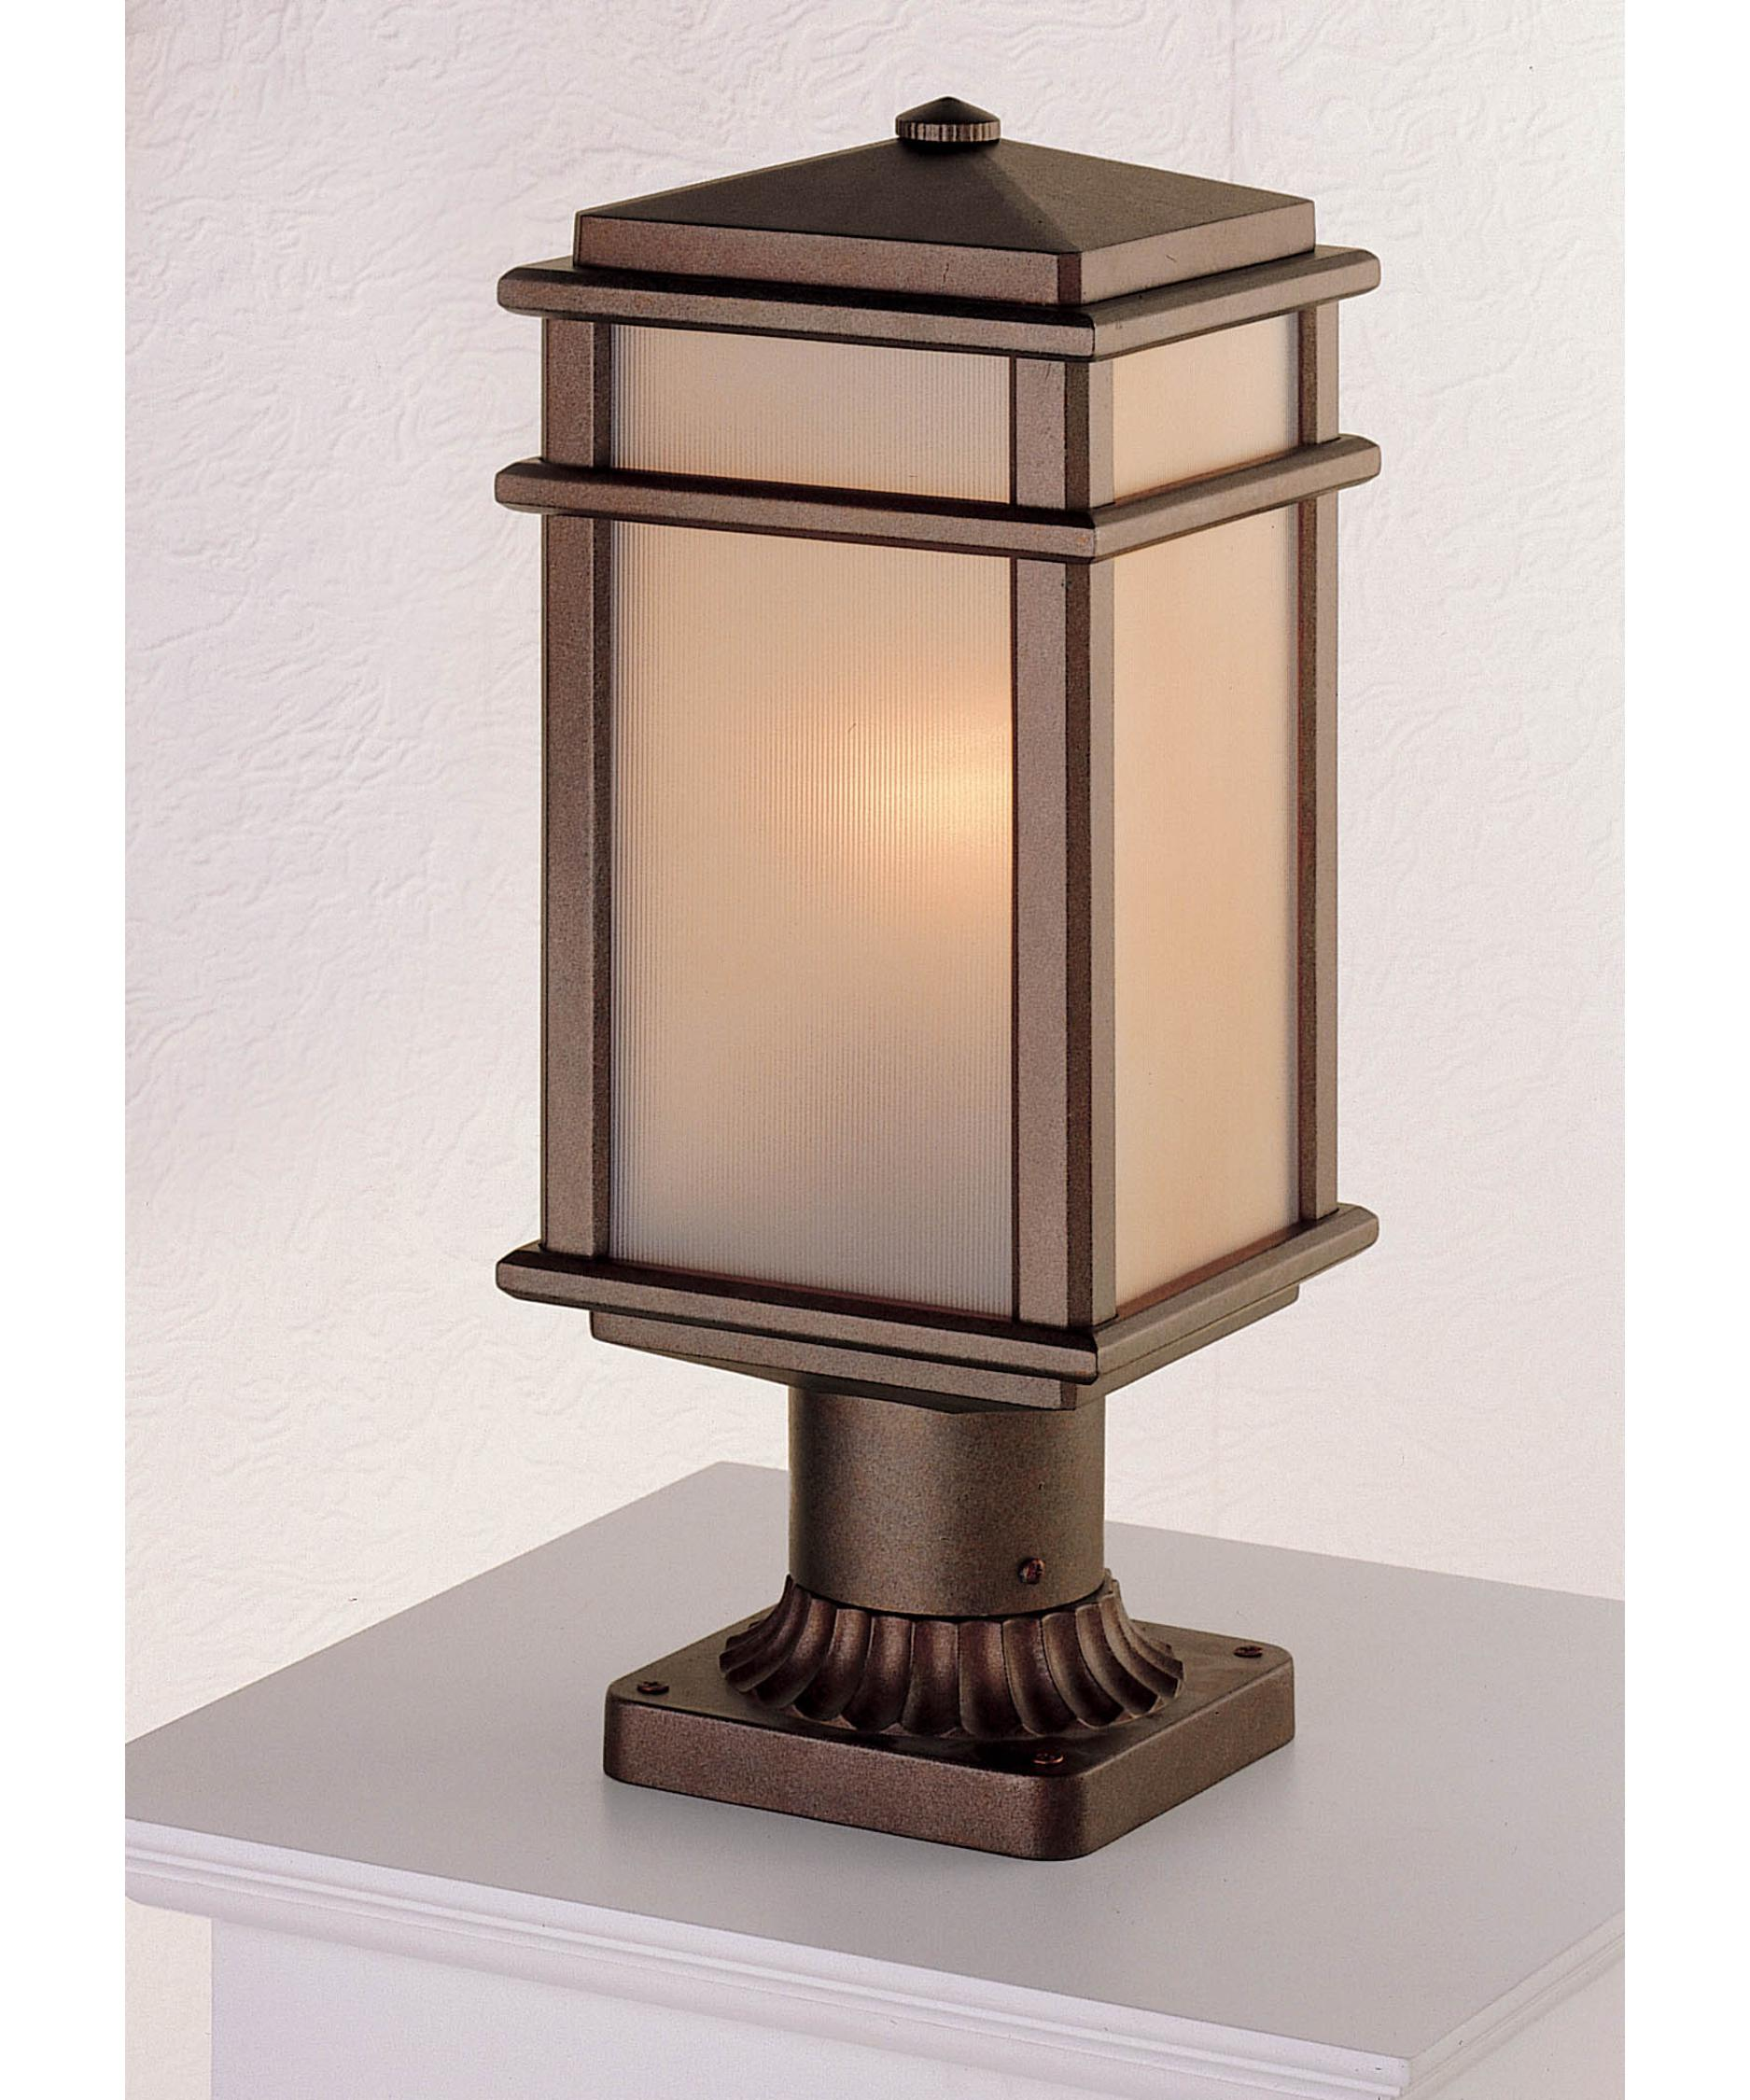 Murray Feiss Outdoor Lighting: Murray Feiss OL3407 Mission Lodge 1 Light Outdoor Post